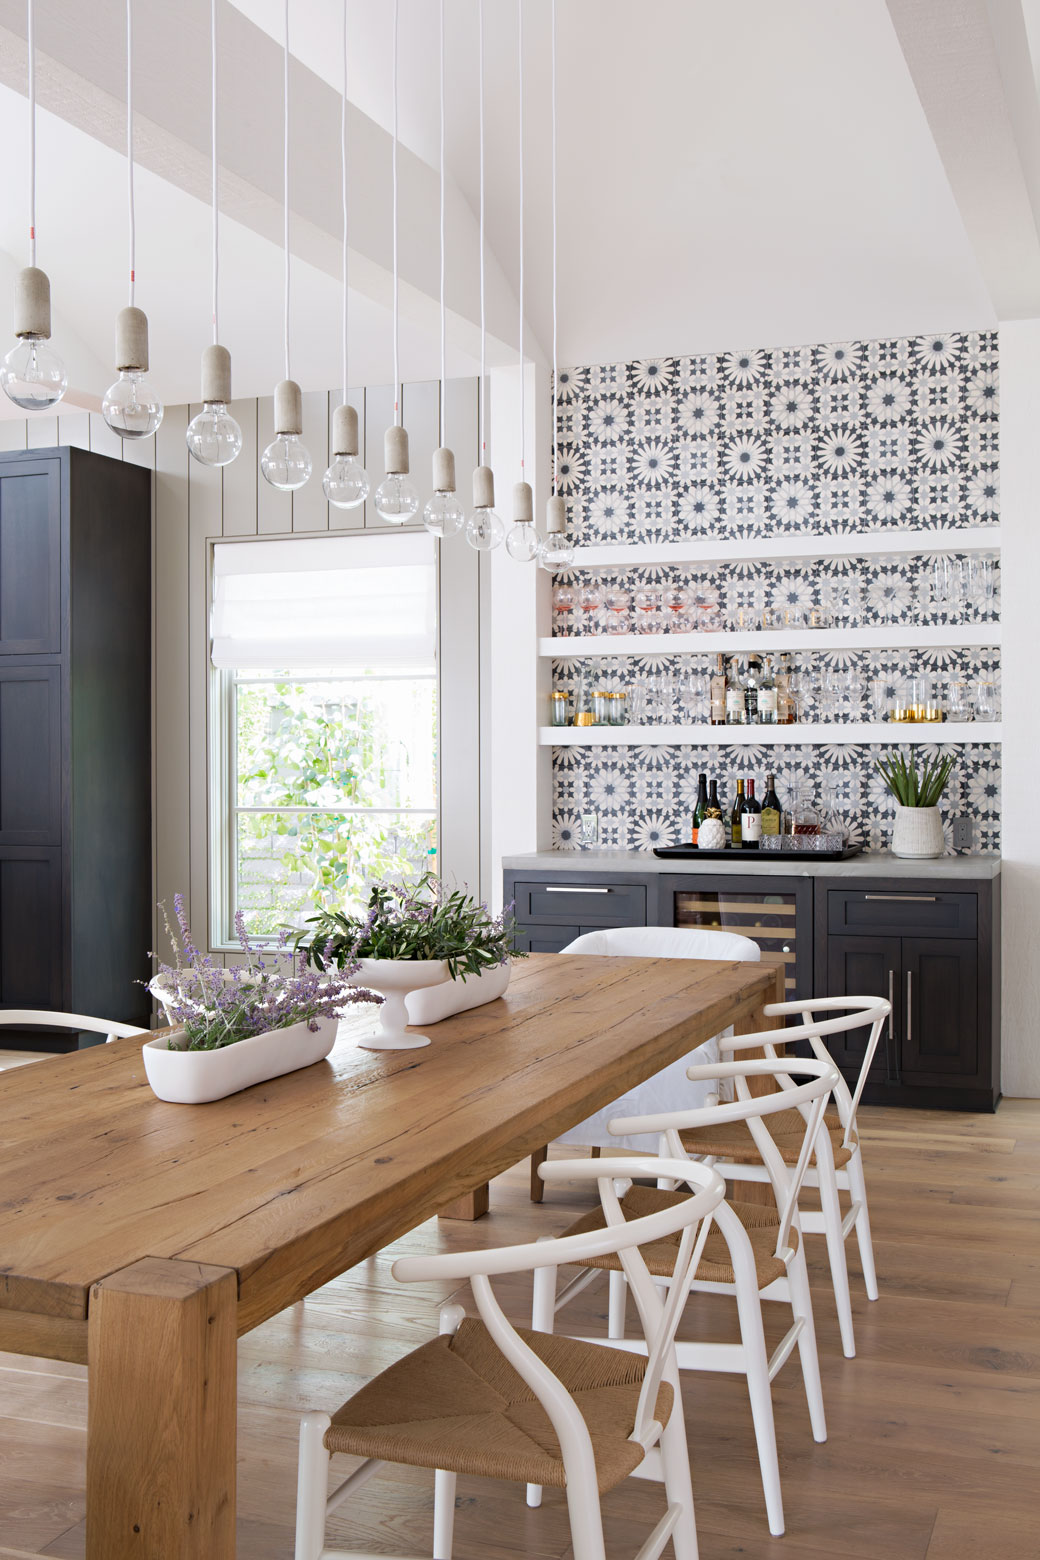 Inspiration for a coastal modern dining room. This blue and white color palette with those white wishbone chairs feels so fresh. I'm also digging the tiled backsplash, dark cabinets, and white floating shelves. Find out how you can get a similar look in your own home on the blog!